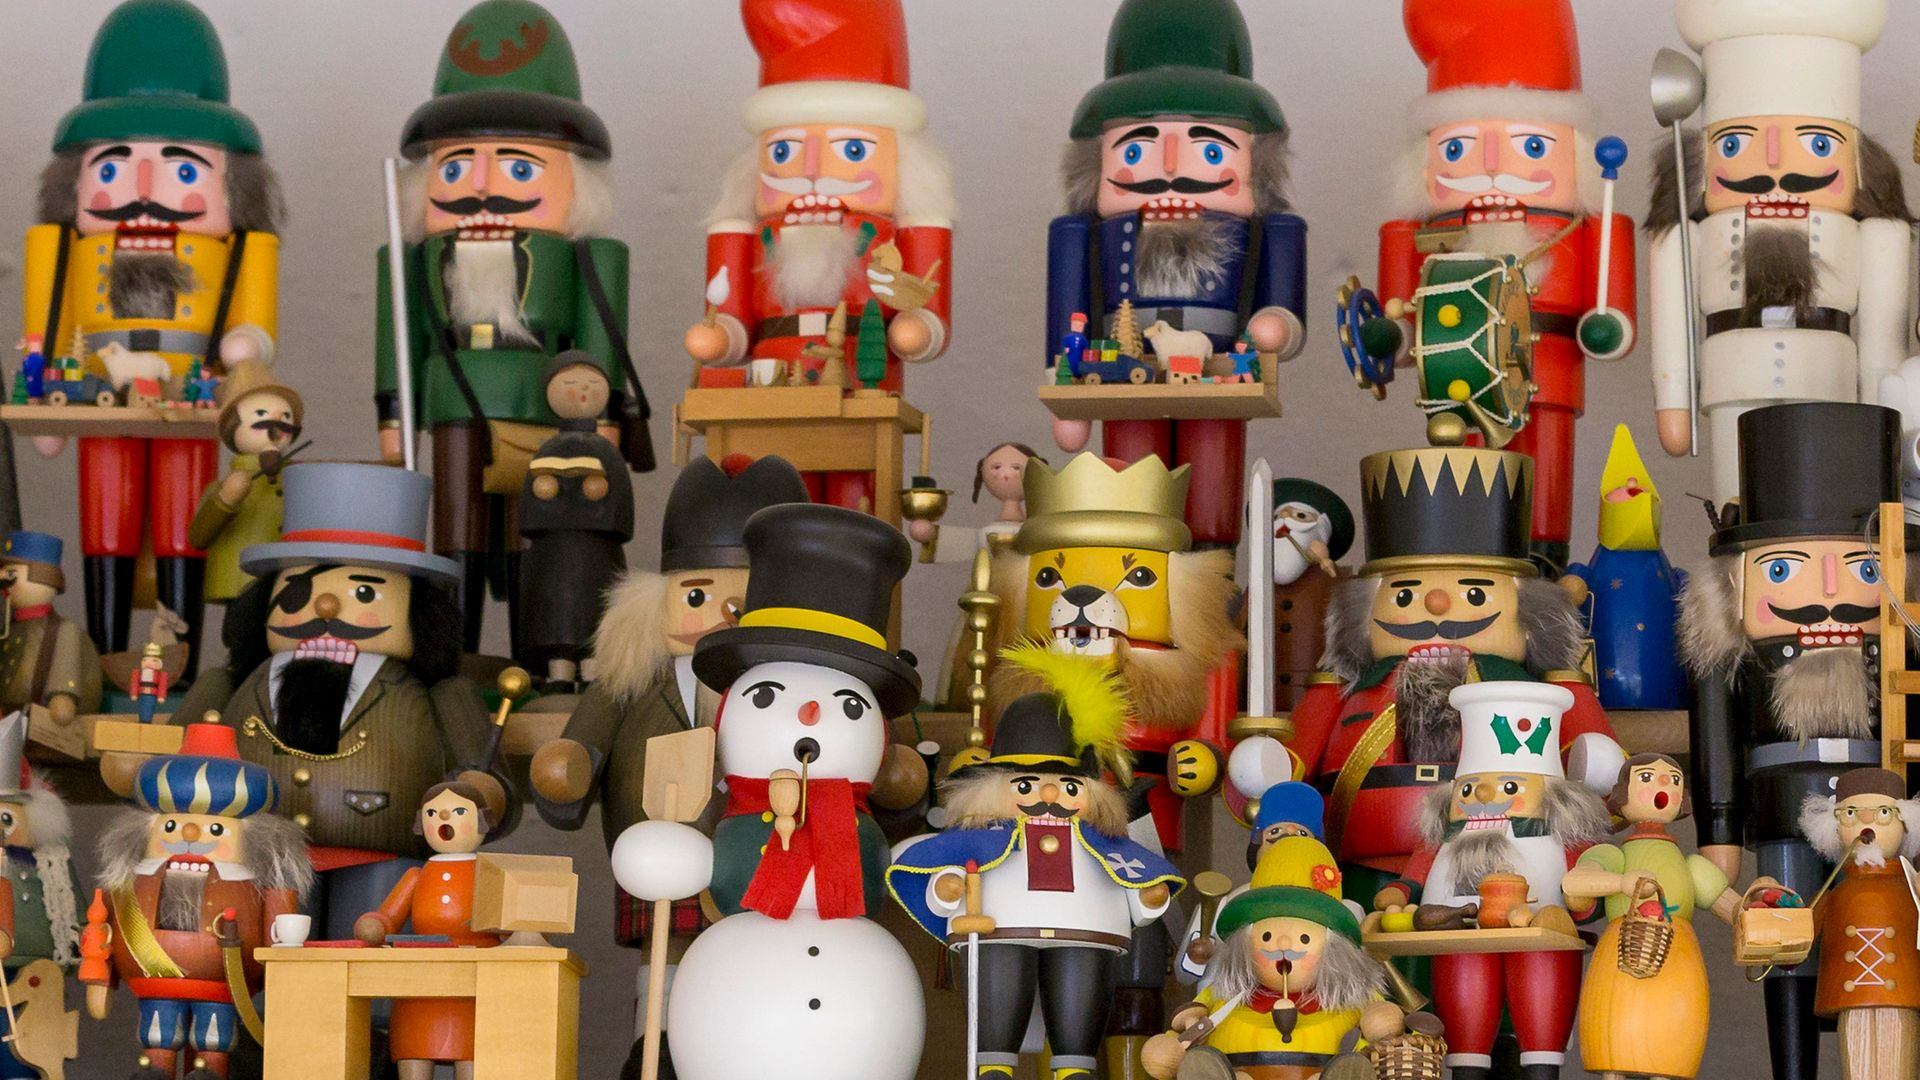 Traditional hand-made wooden nutcracker figures in Seiffen, Germany - Credit: Getty Images